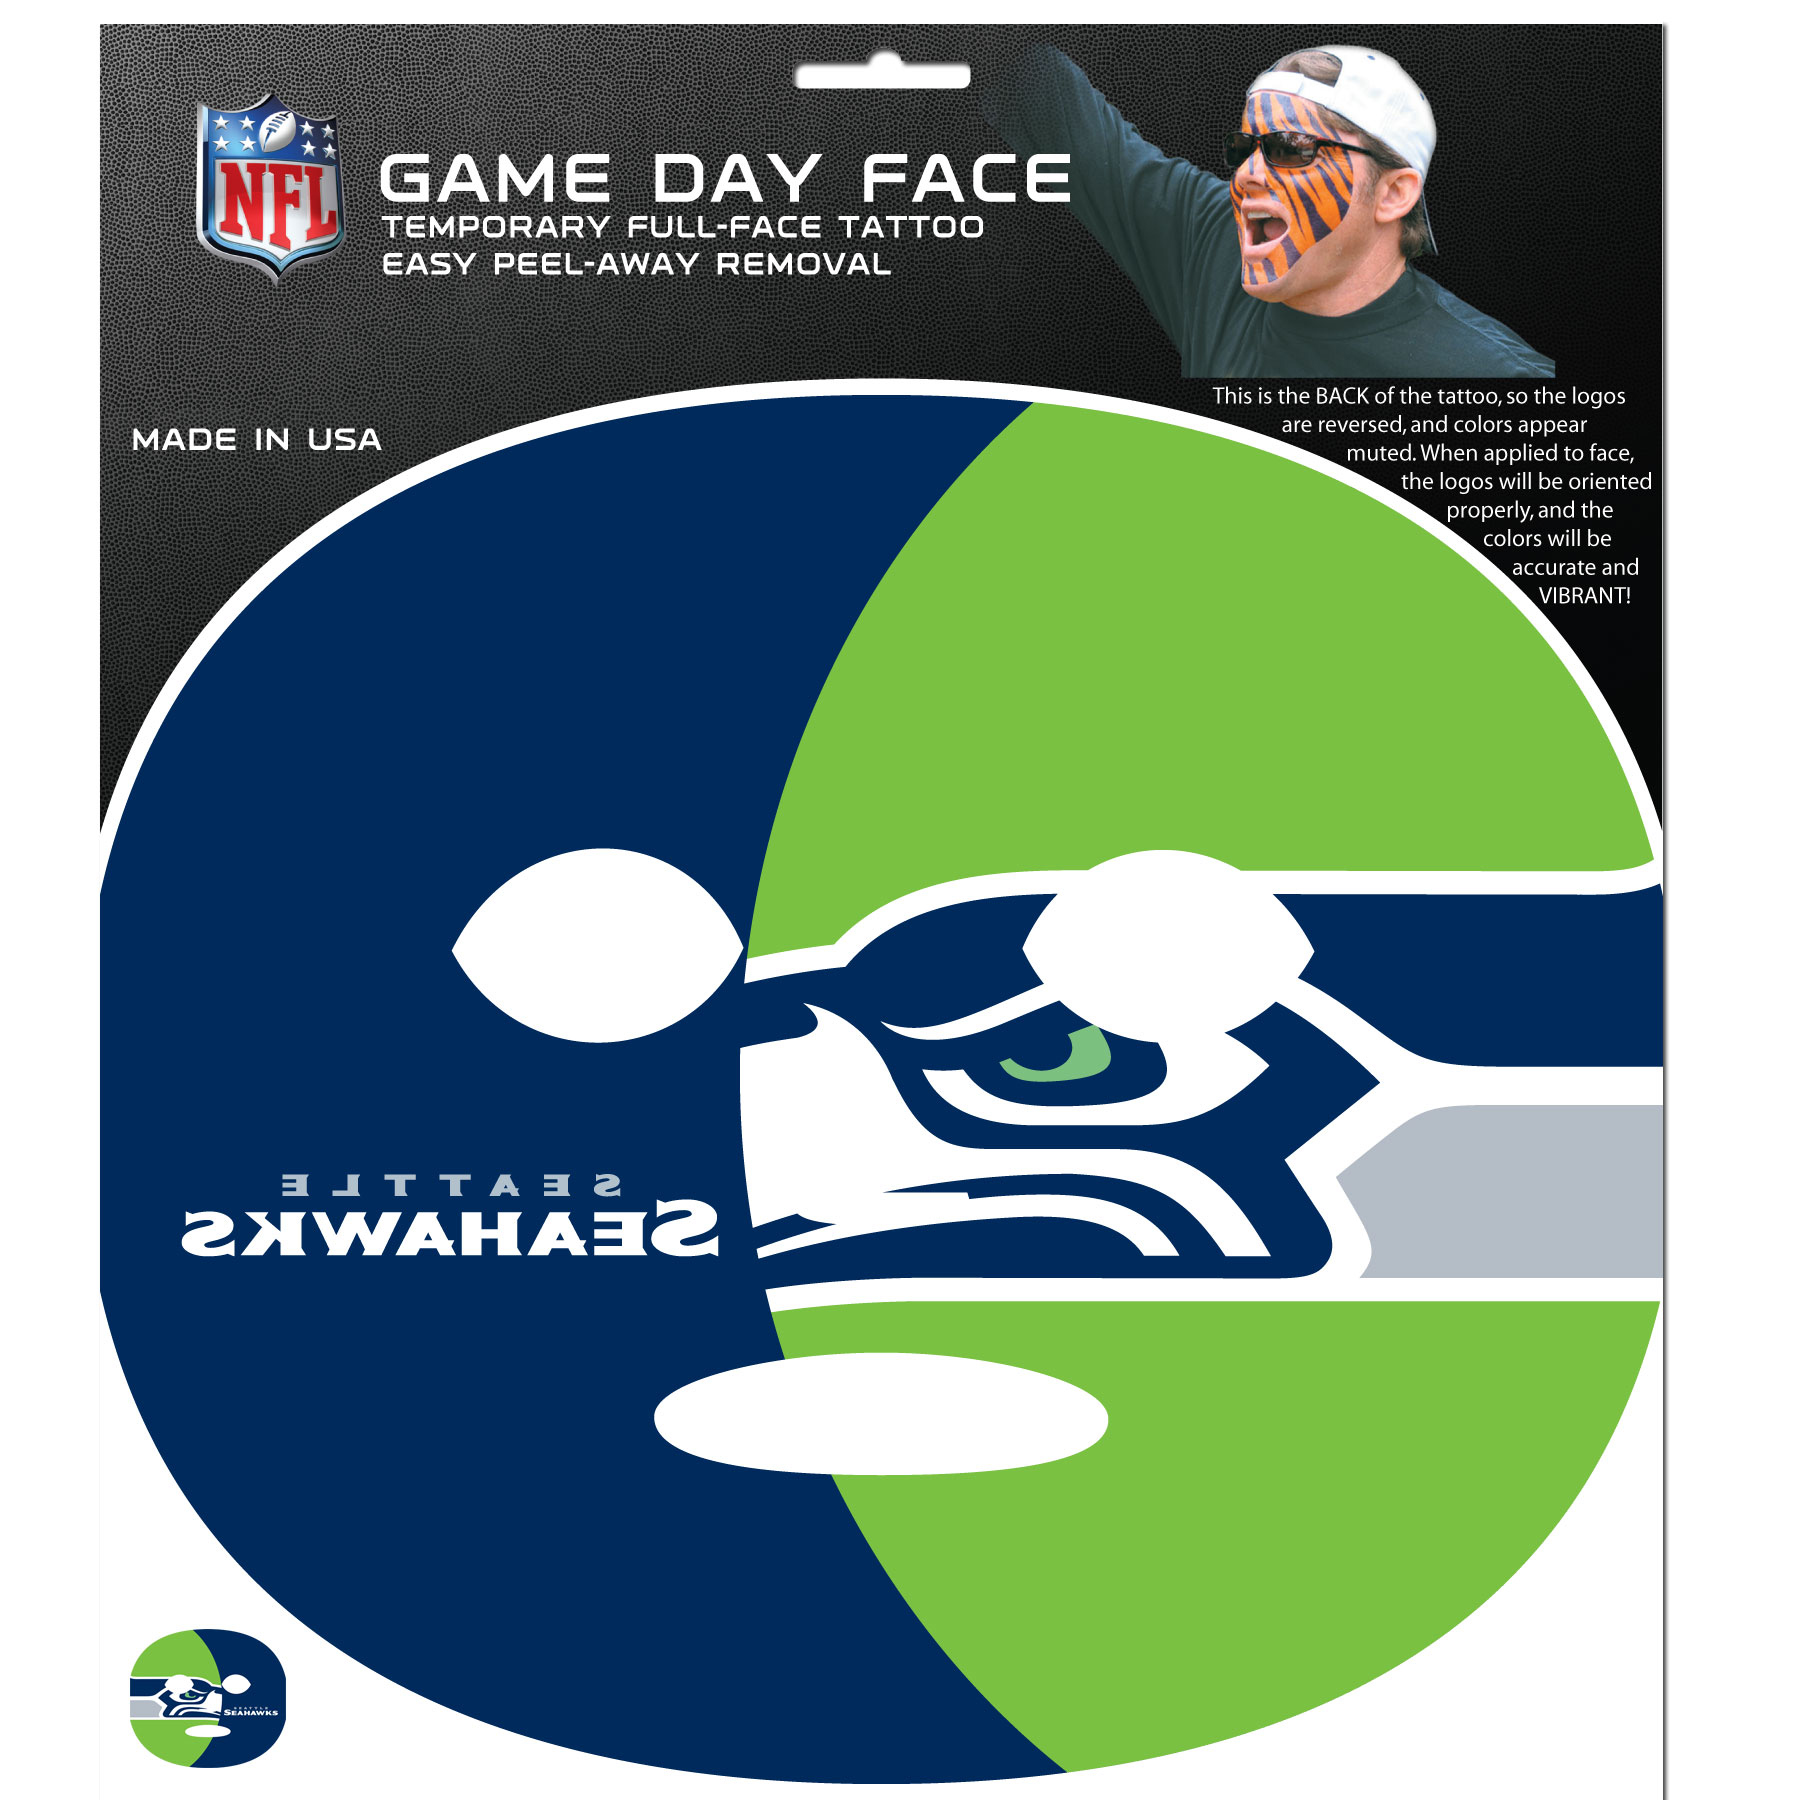 Seattle Seahawks Set of 4 Game Day Faces - No better way to show your team pride than by painting your face. Siskiyou's Game Day Face Temporary Tattoo isn't your typical face paint. It is a water based application that doesn't smudge, smear or sweat off while you're wearing it and easily peels off after you're done celebrating your team's big Win! The temporary tattoo is large enough to trim down to fit your face. Our Game Day Face Temporary Tattoo's are fun for fans of all ages. You may have seen our product before, these are the same Temporary Face Tattoos as pitched on ABC's Shark Tank.